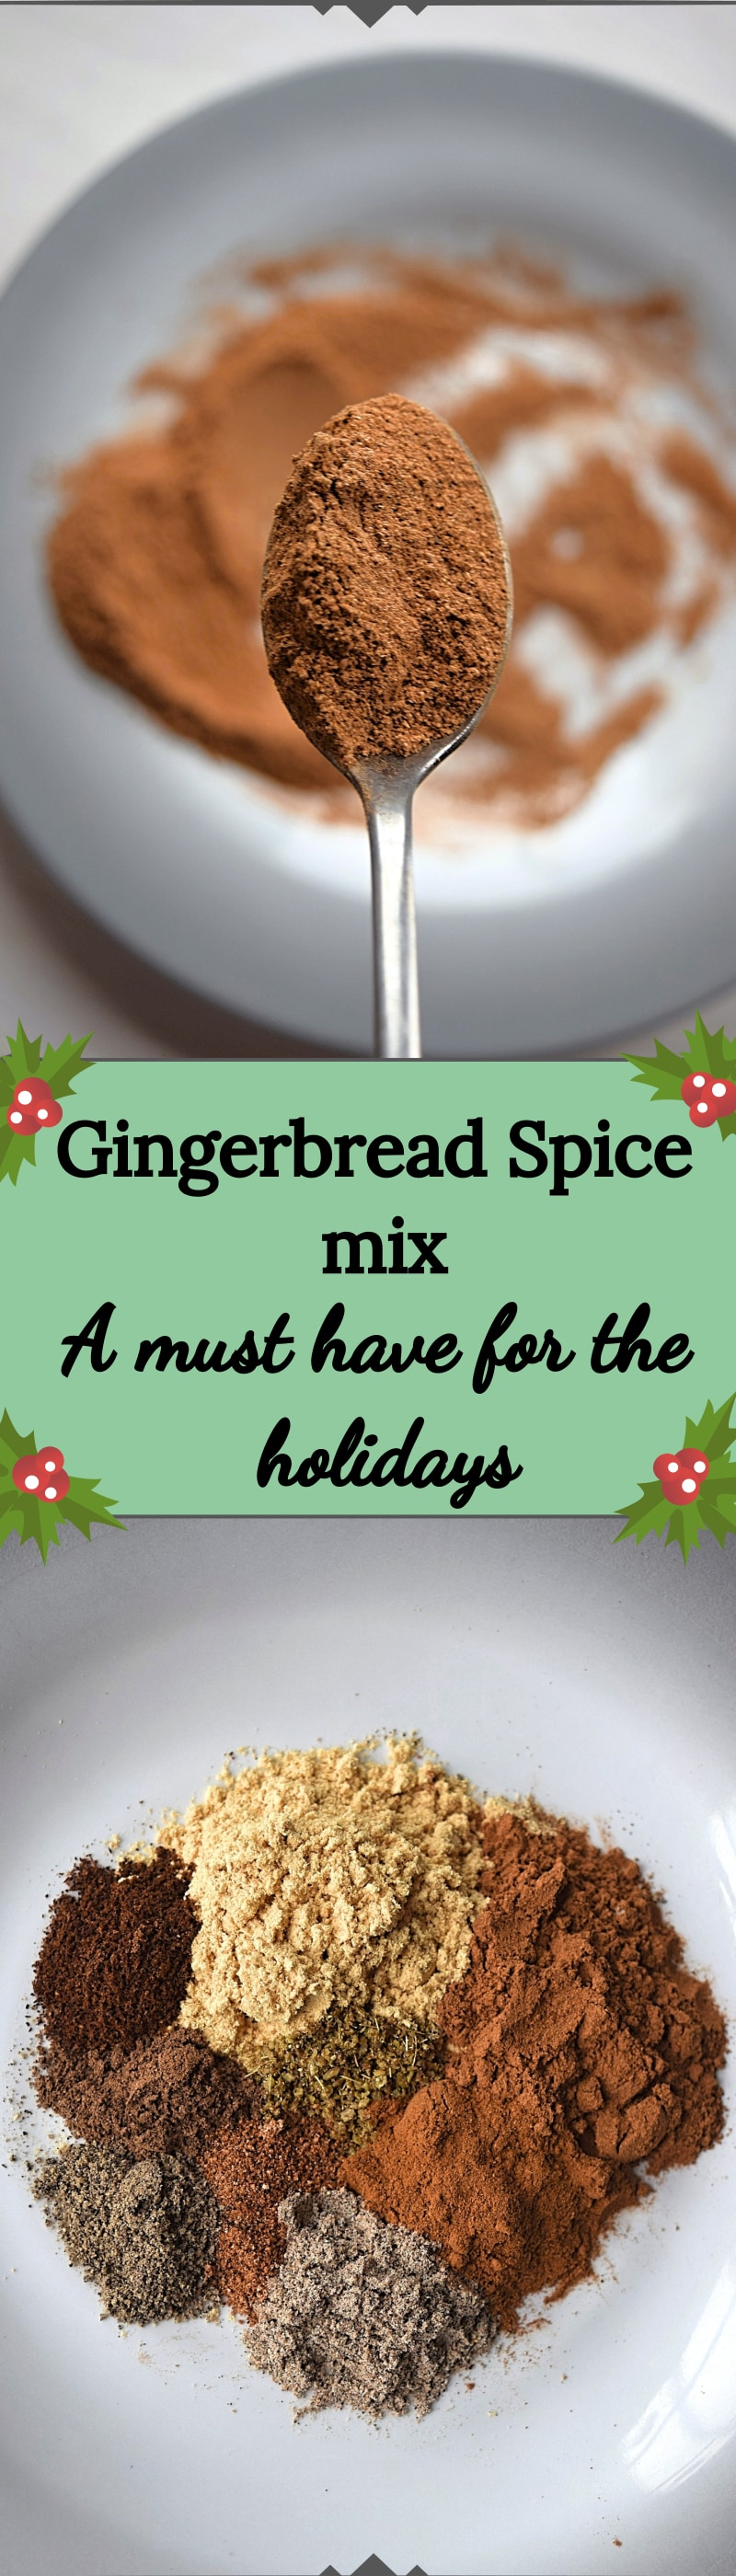 gingerbread spice mix - A Stray Kitchen